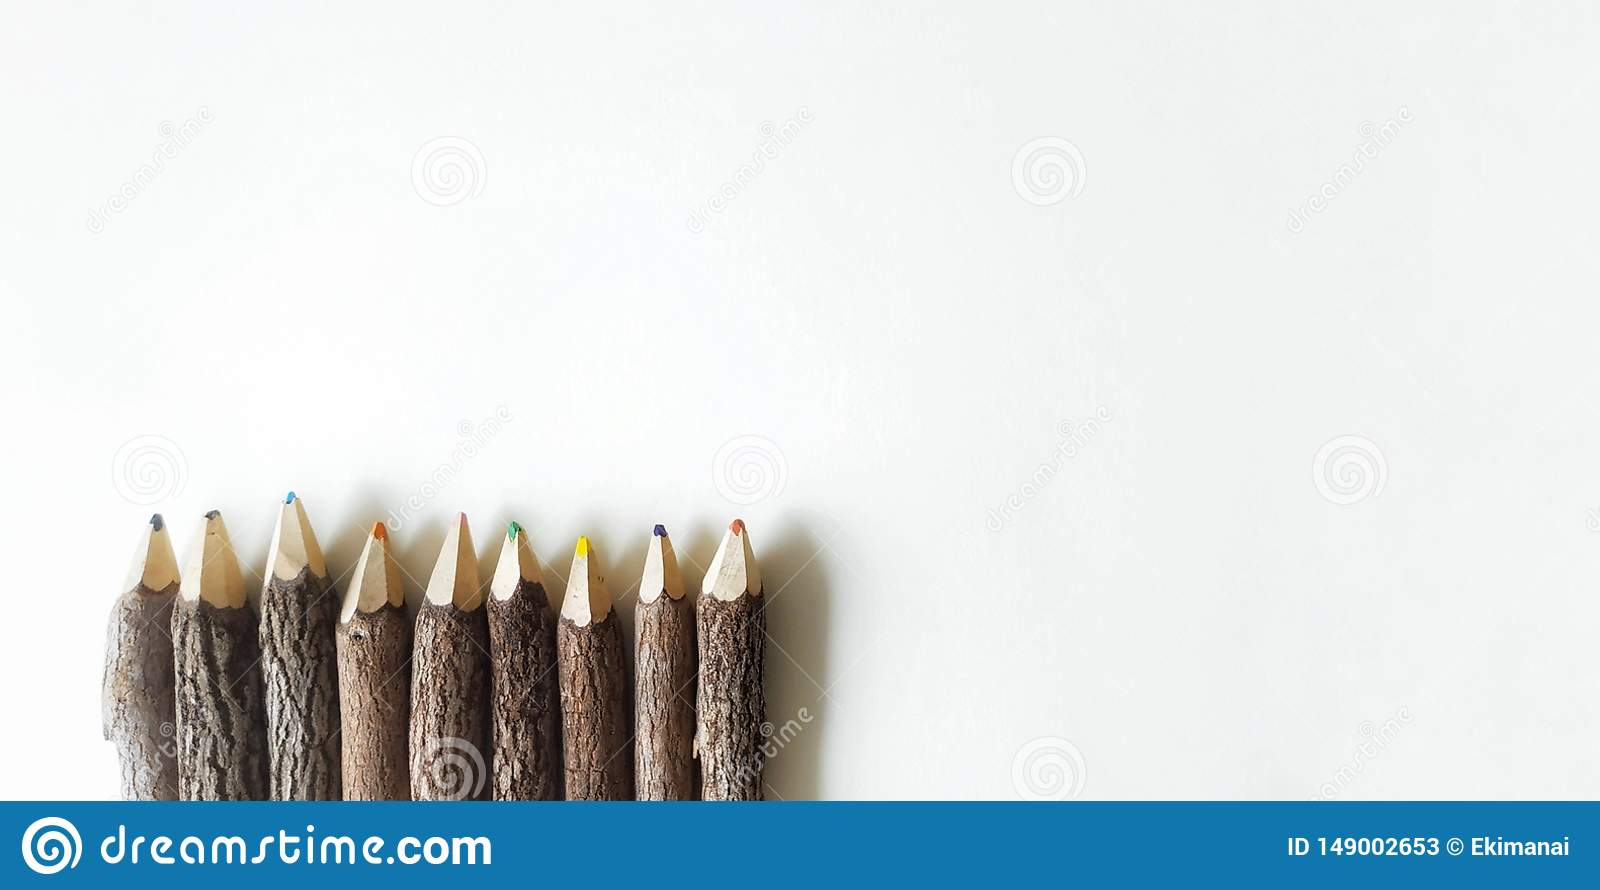 color wooden pencils on white background